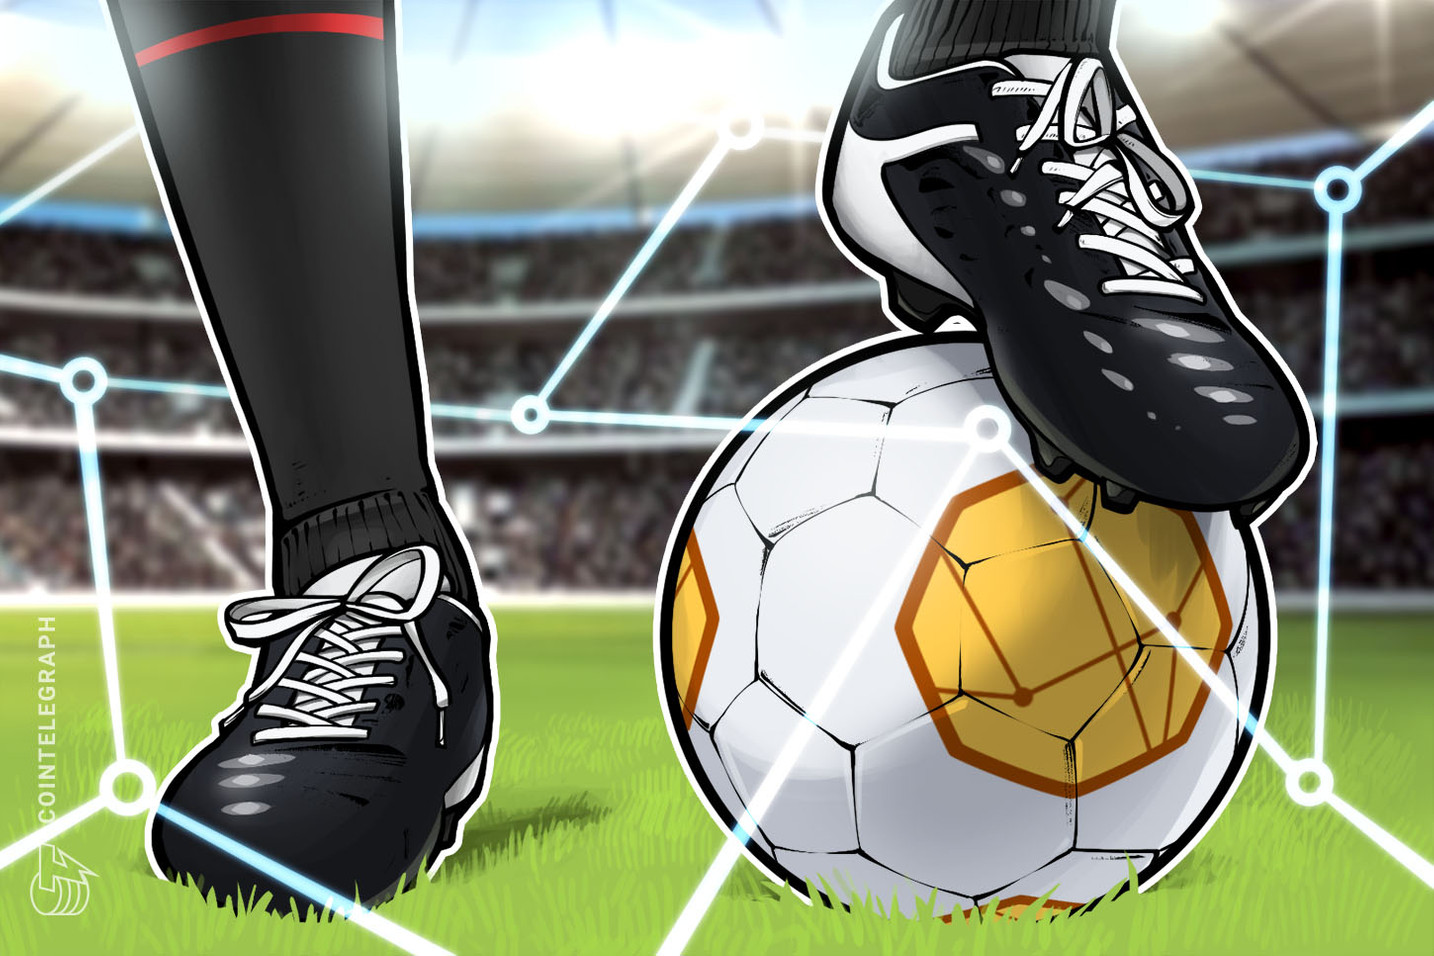 A Crypto Exchange Is the Major Sponsor of Turkey's National Soccer Teams